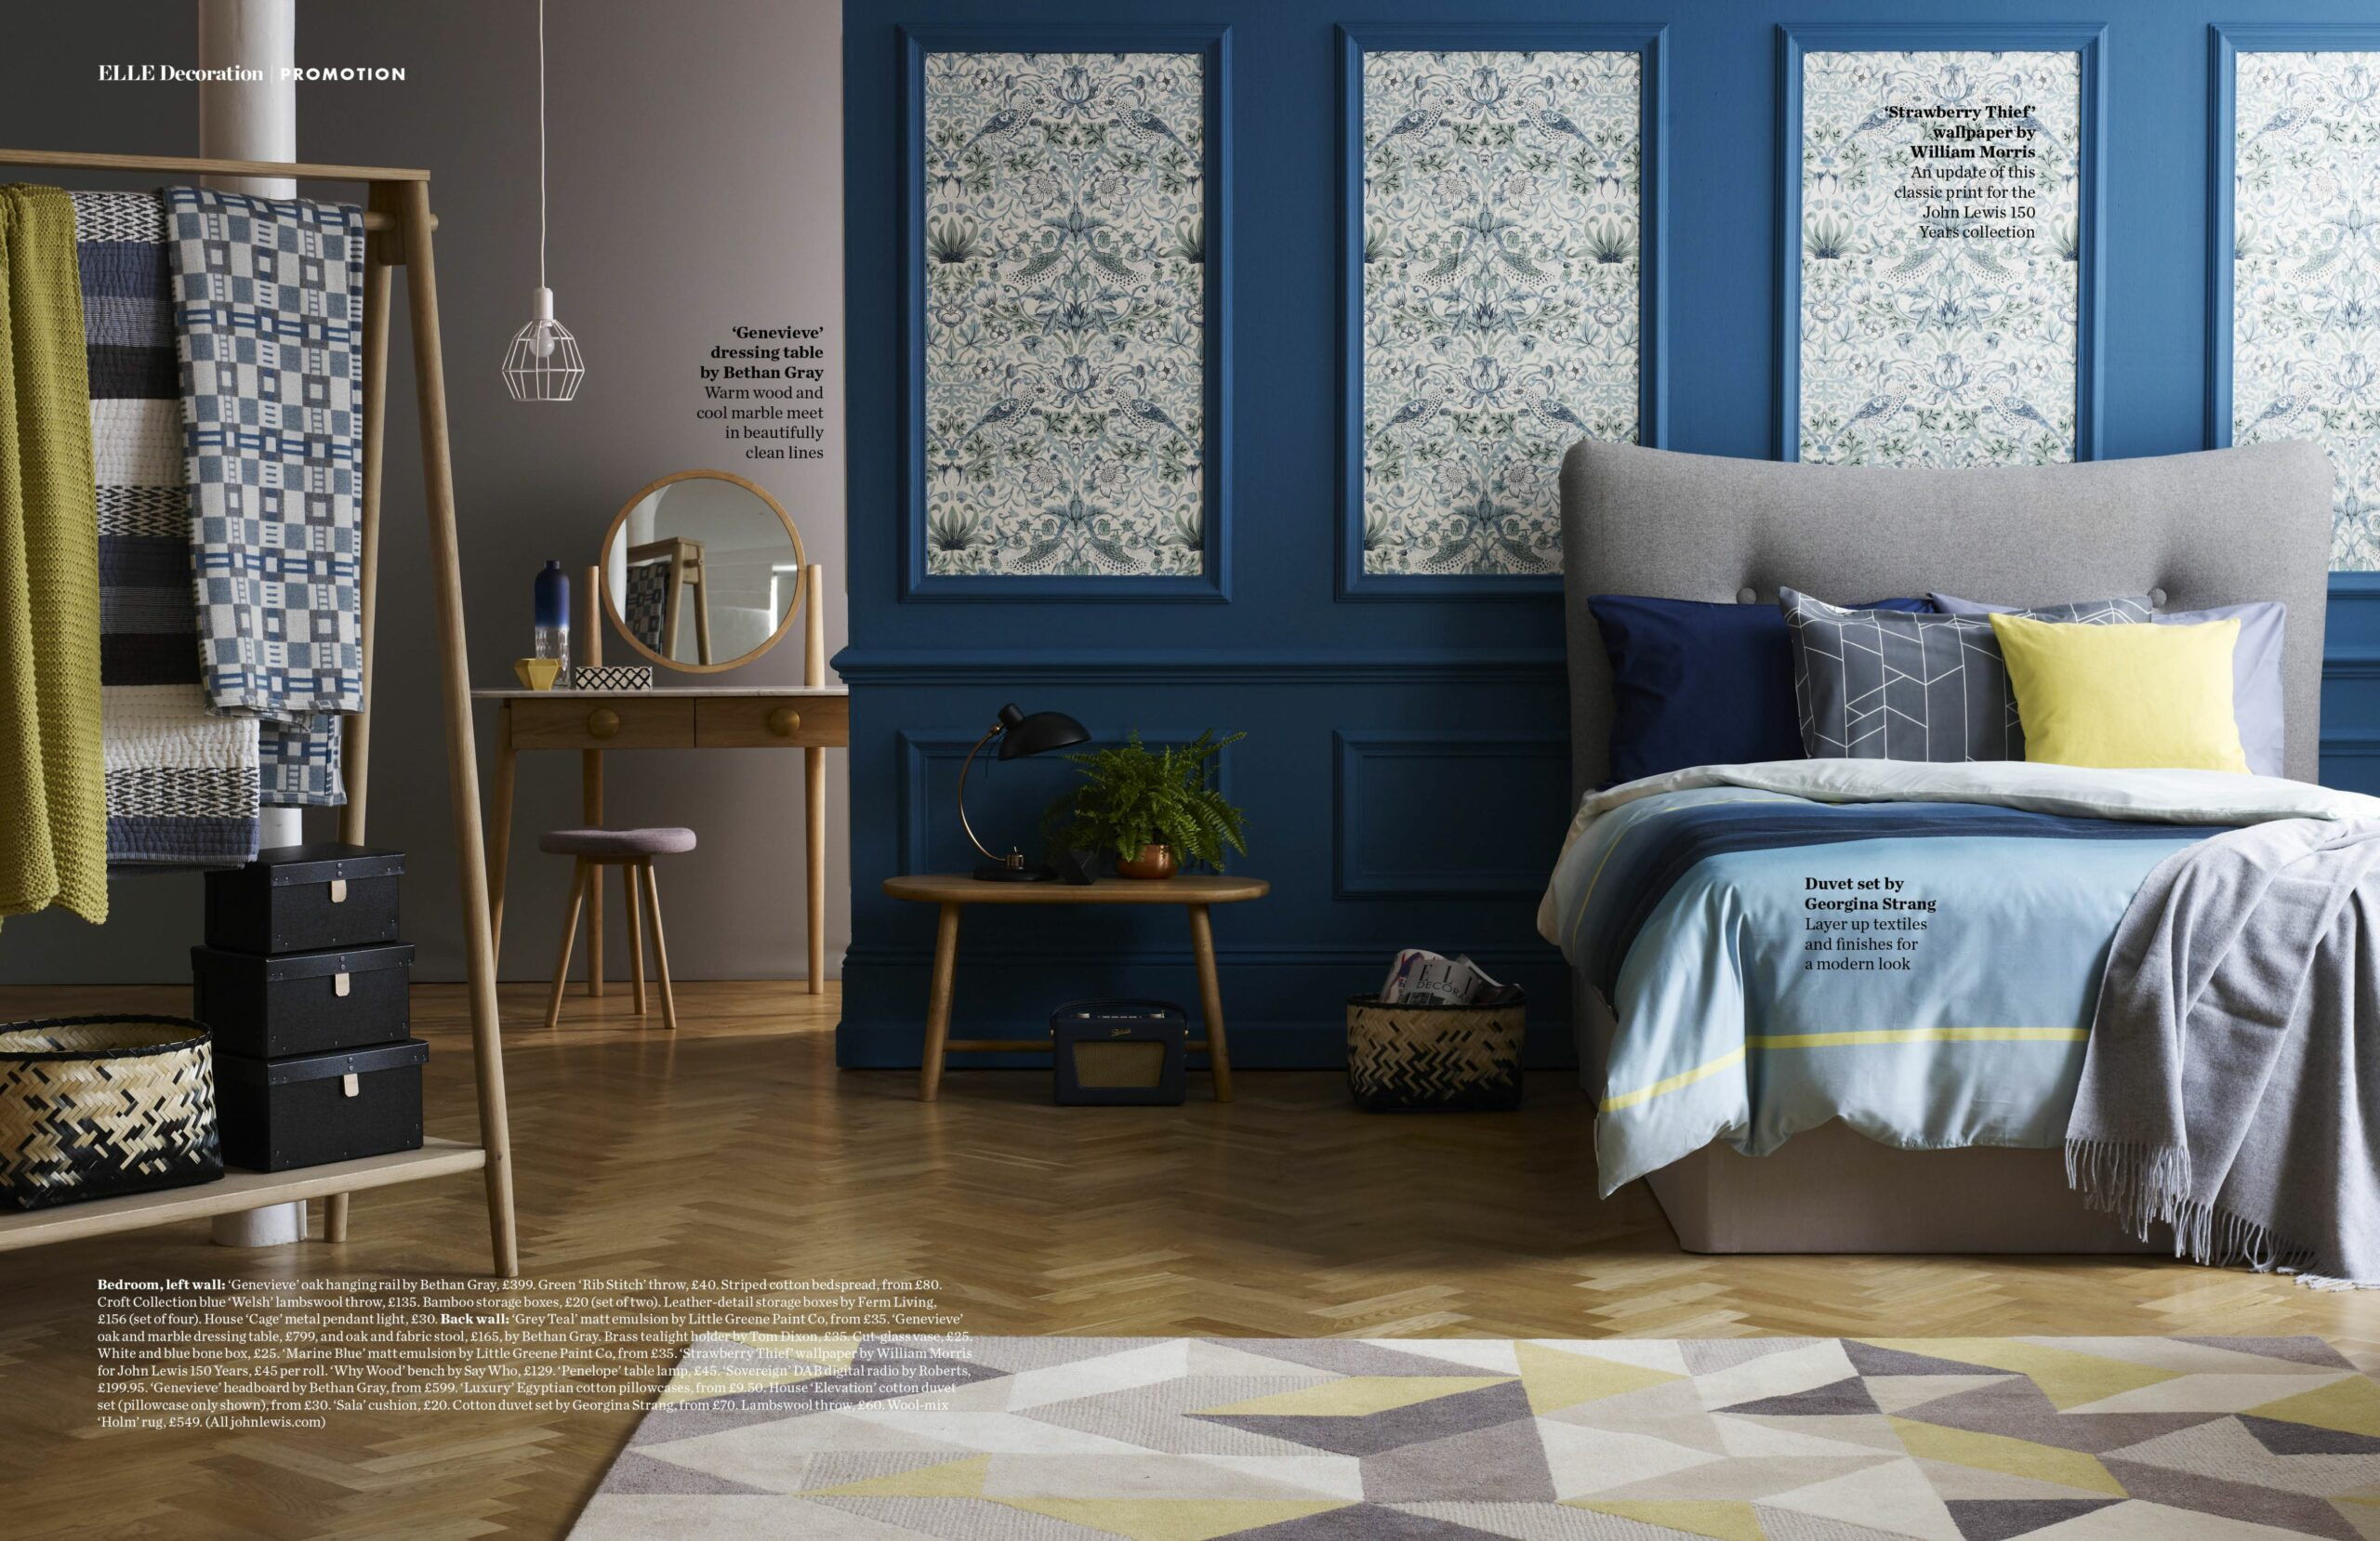 Bedroom Decorating Ideas John Lewis | Bedroom Decorating - bedroom ideas john lewis